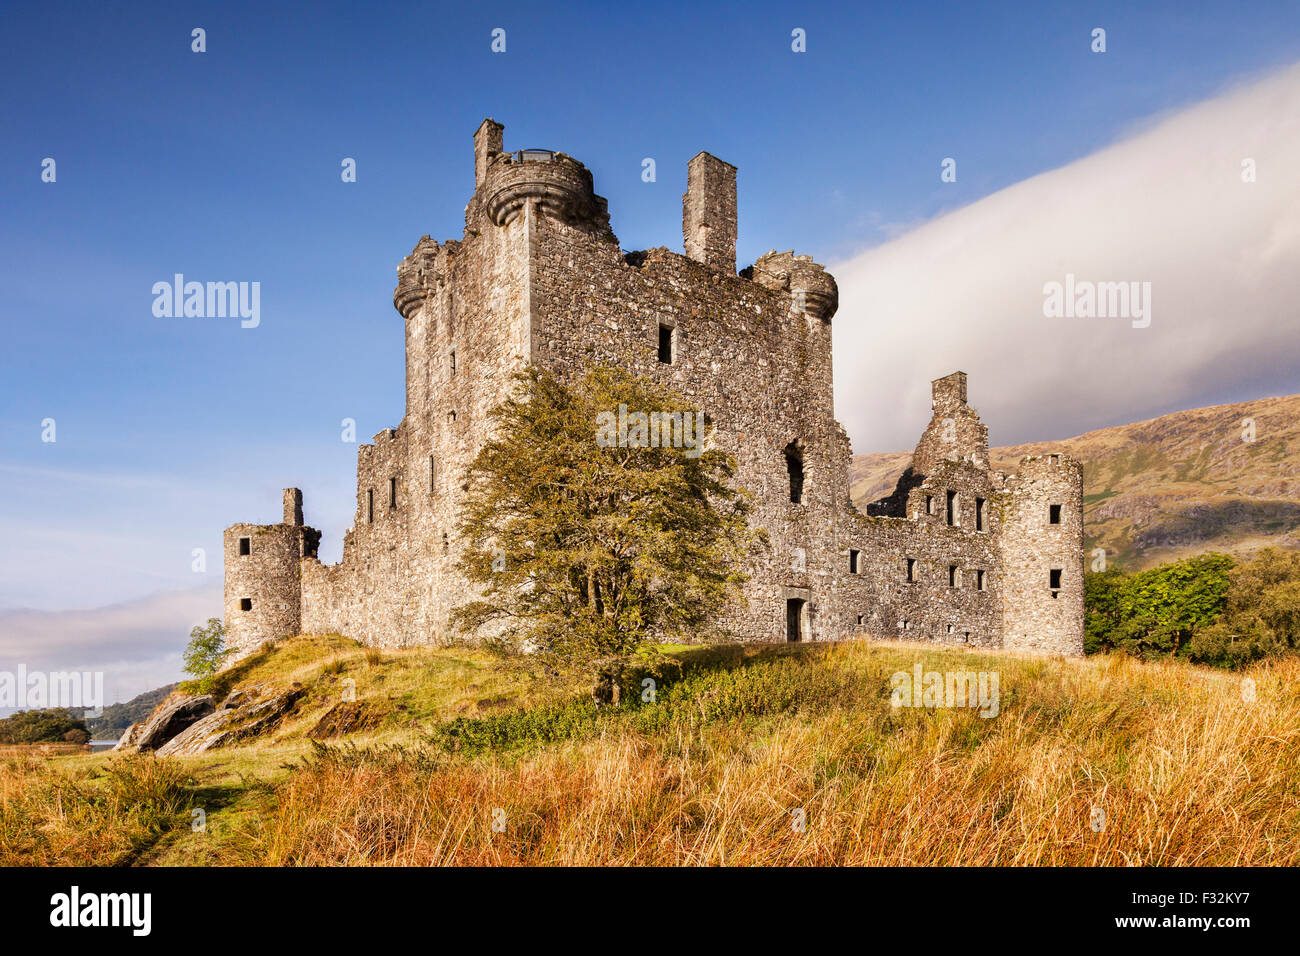 Kilchurn Castle, Loch Awe, Argyll and Bute, Scotland, UK. - Stock Image